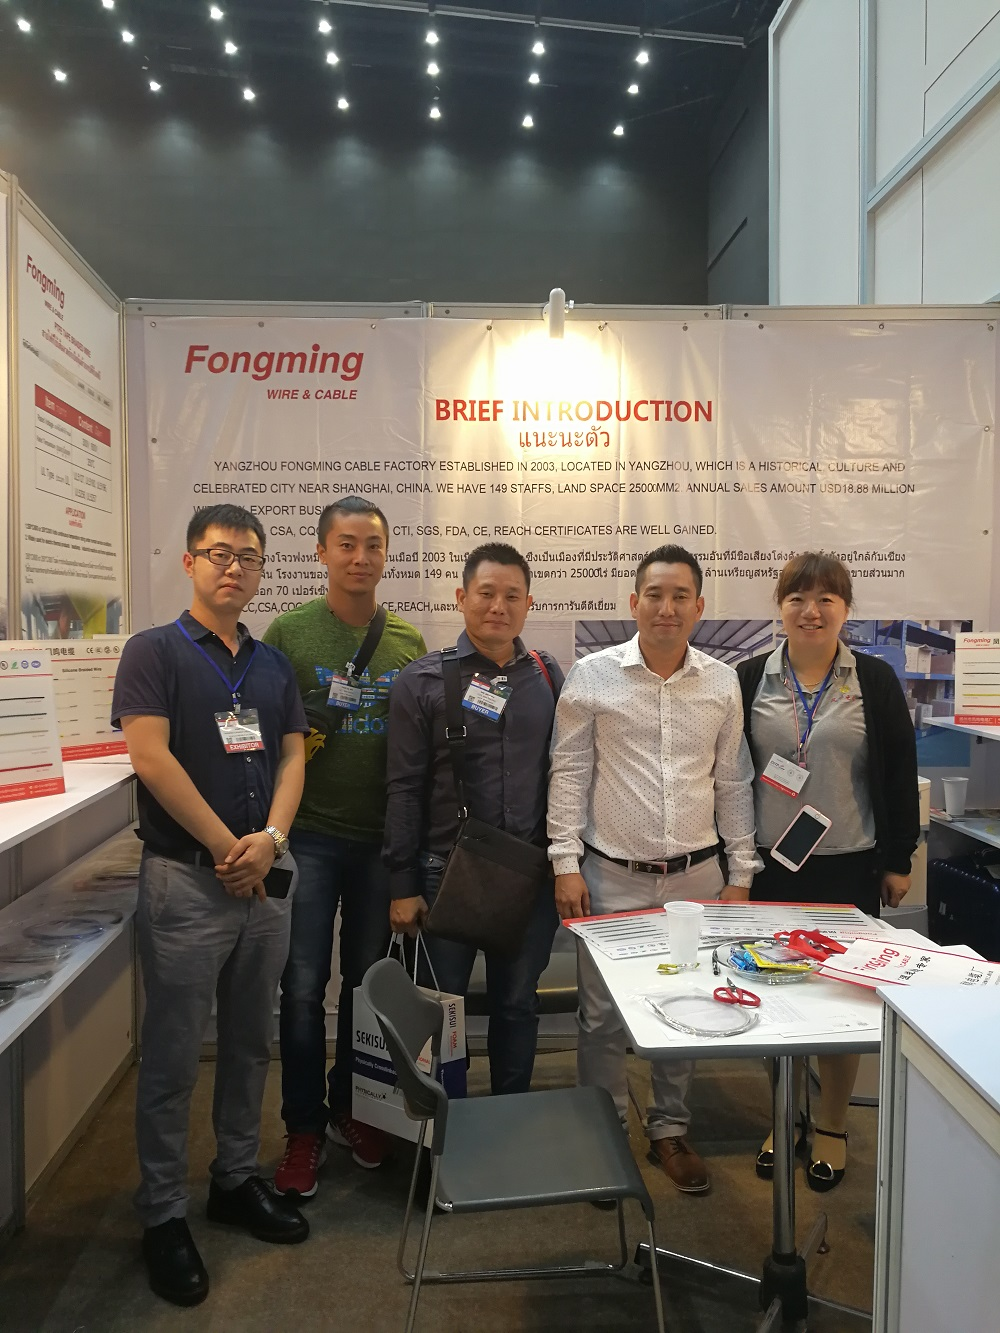 FongMing Cable Booth